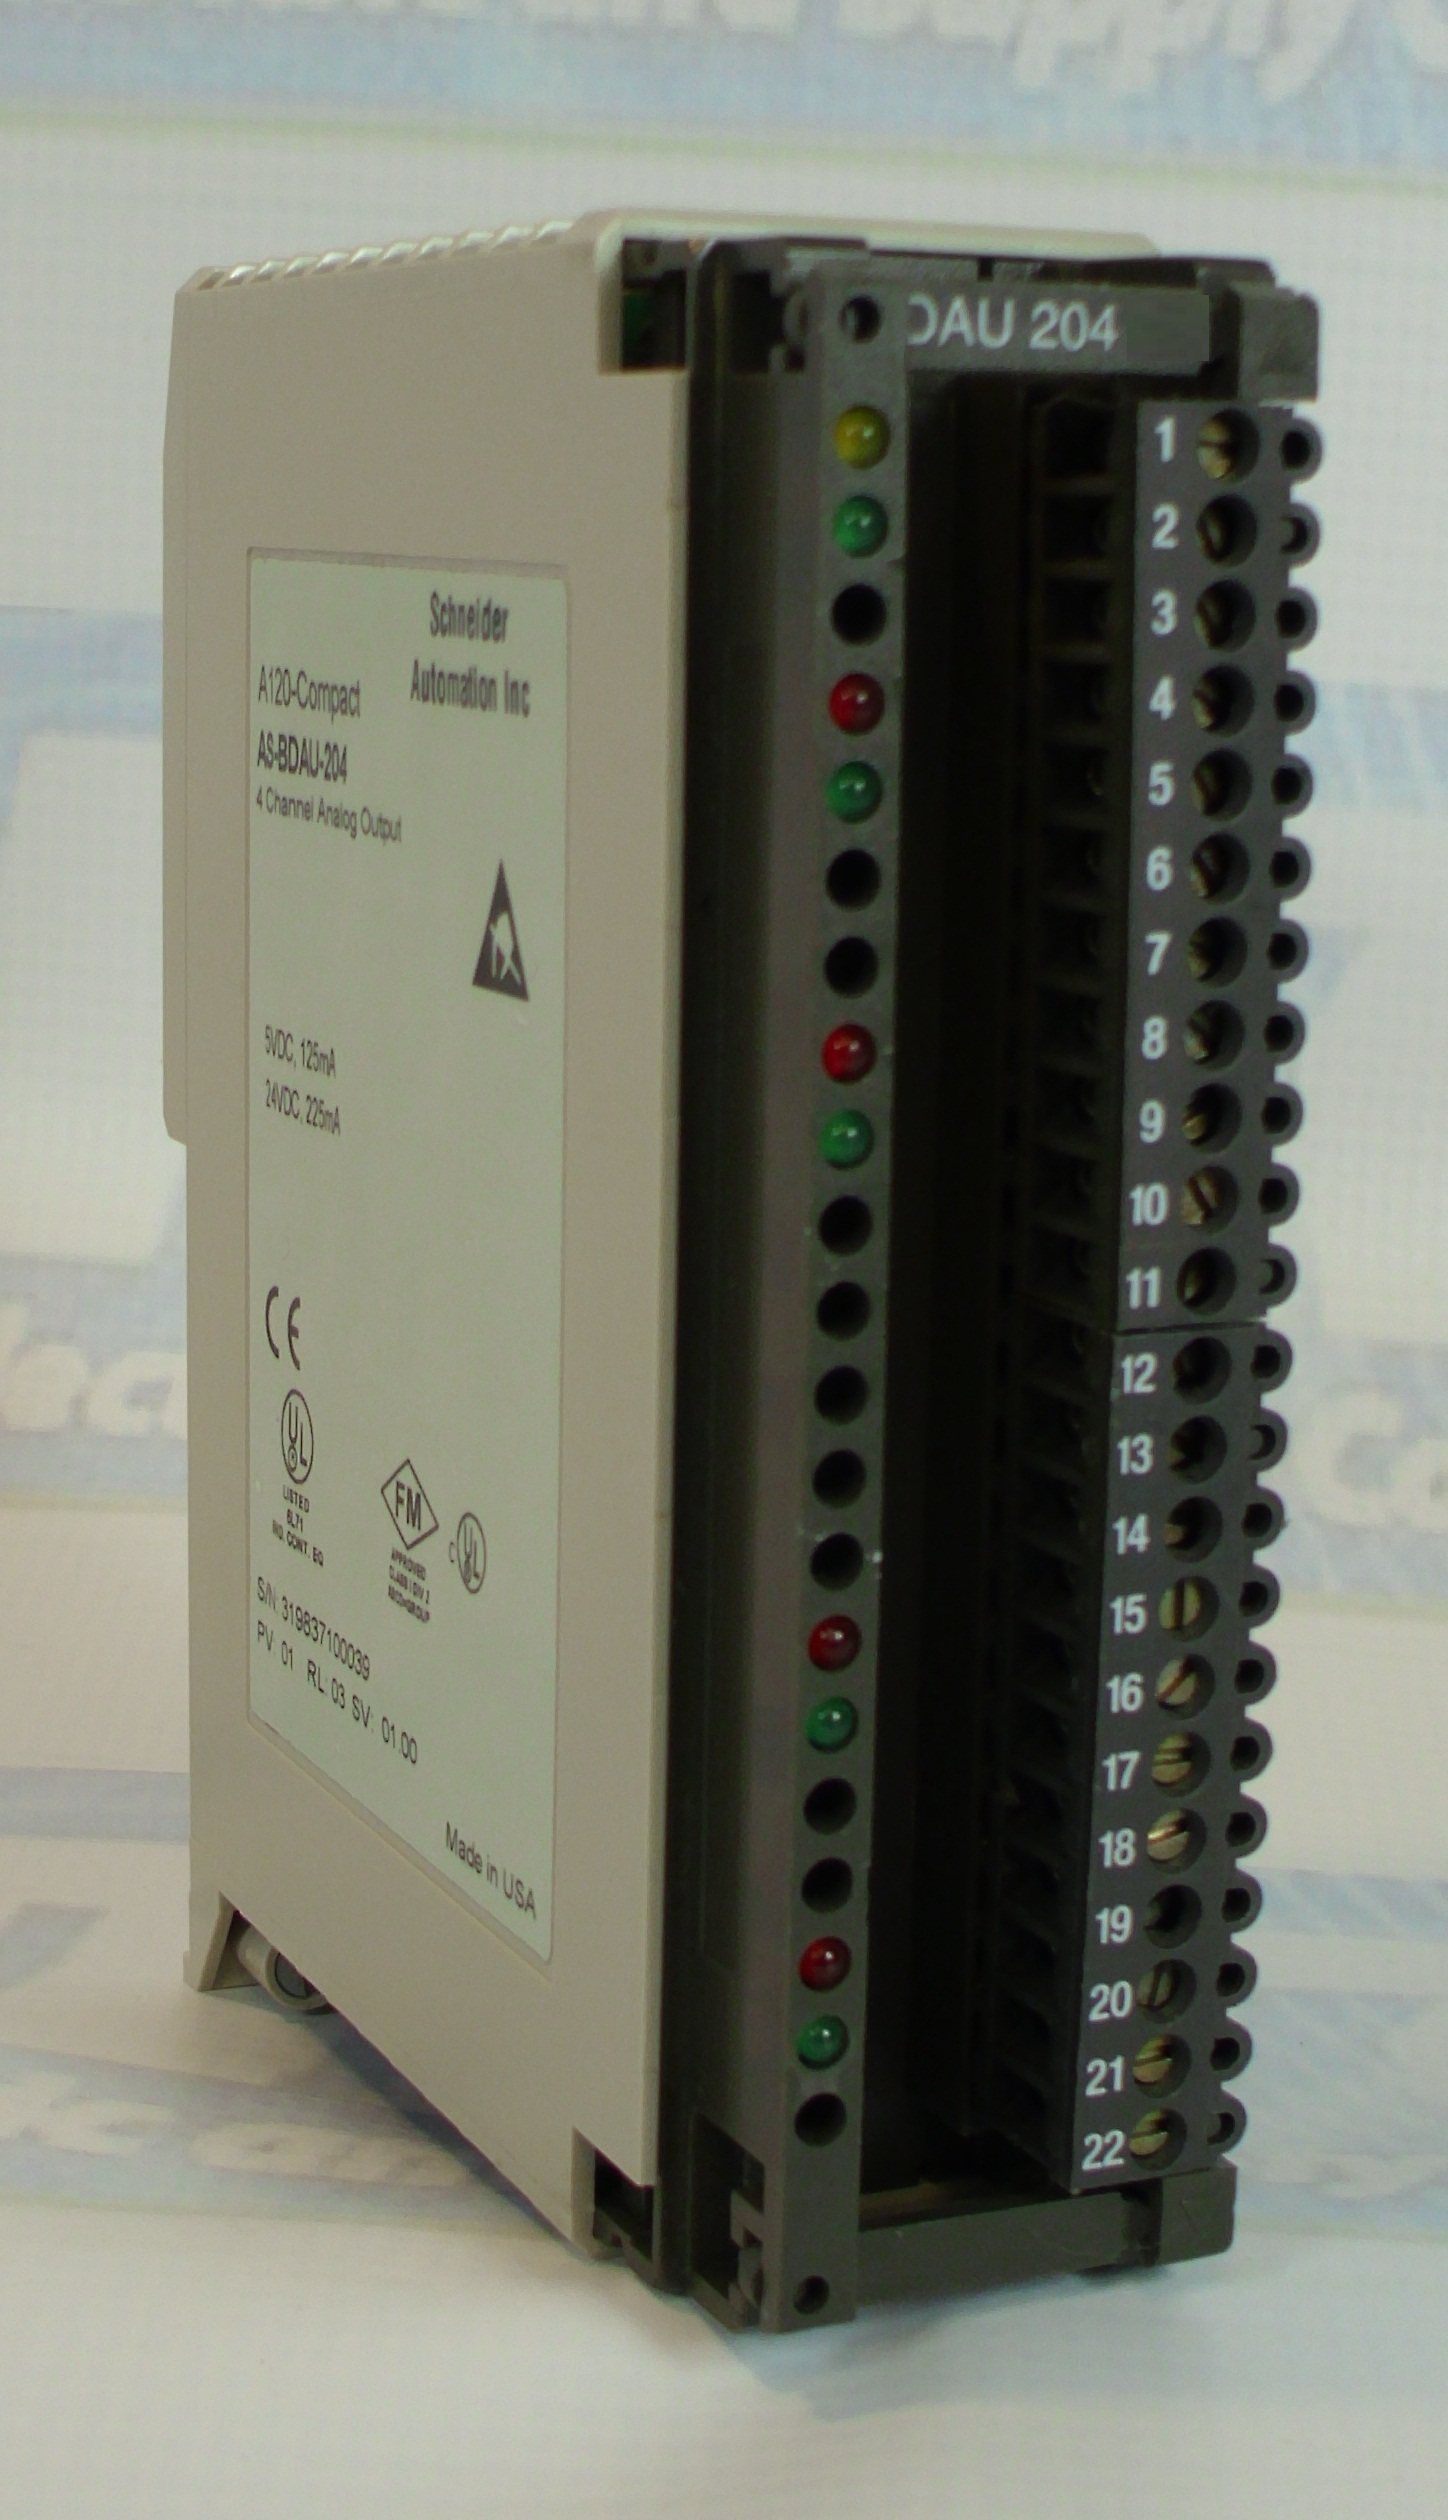 Schneider Automation AS-BDAU-204 | Analog |  Output, Isol. | AS-BDAU-204 | Image